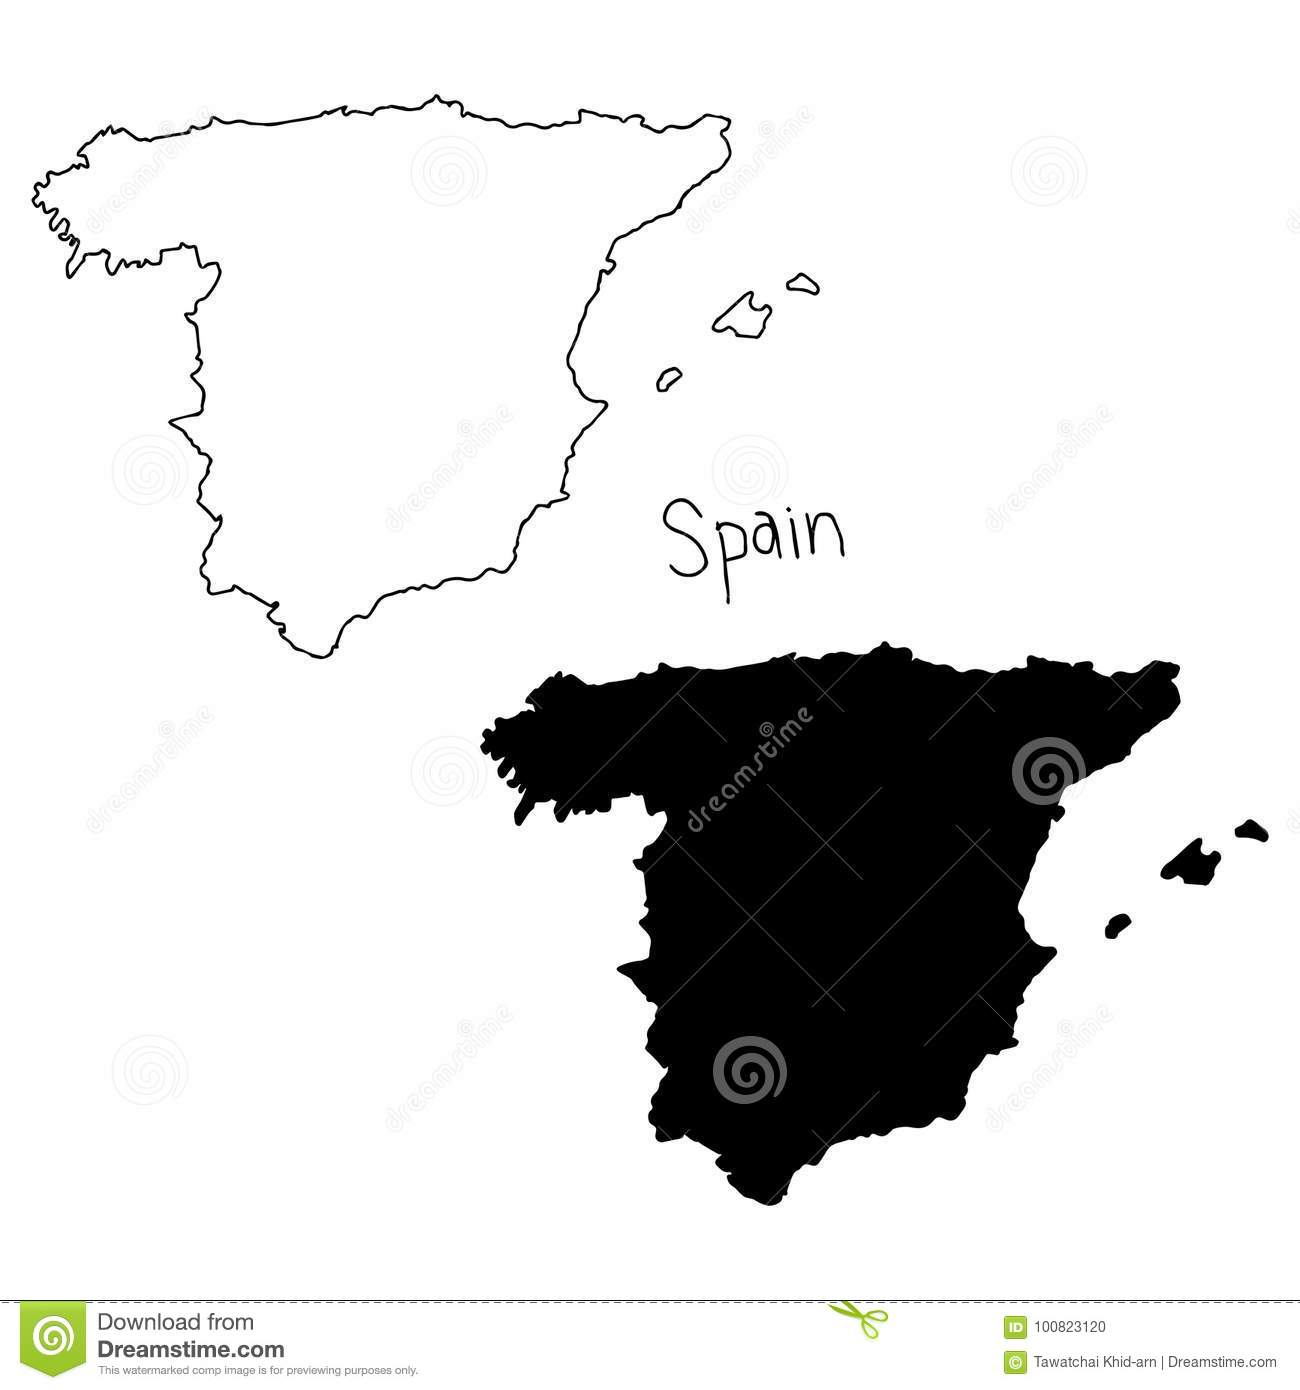 Map Of Spain Drawing.Outline And Silhouette Map Of Spain Vector Illustration Hand D